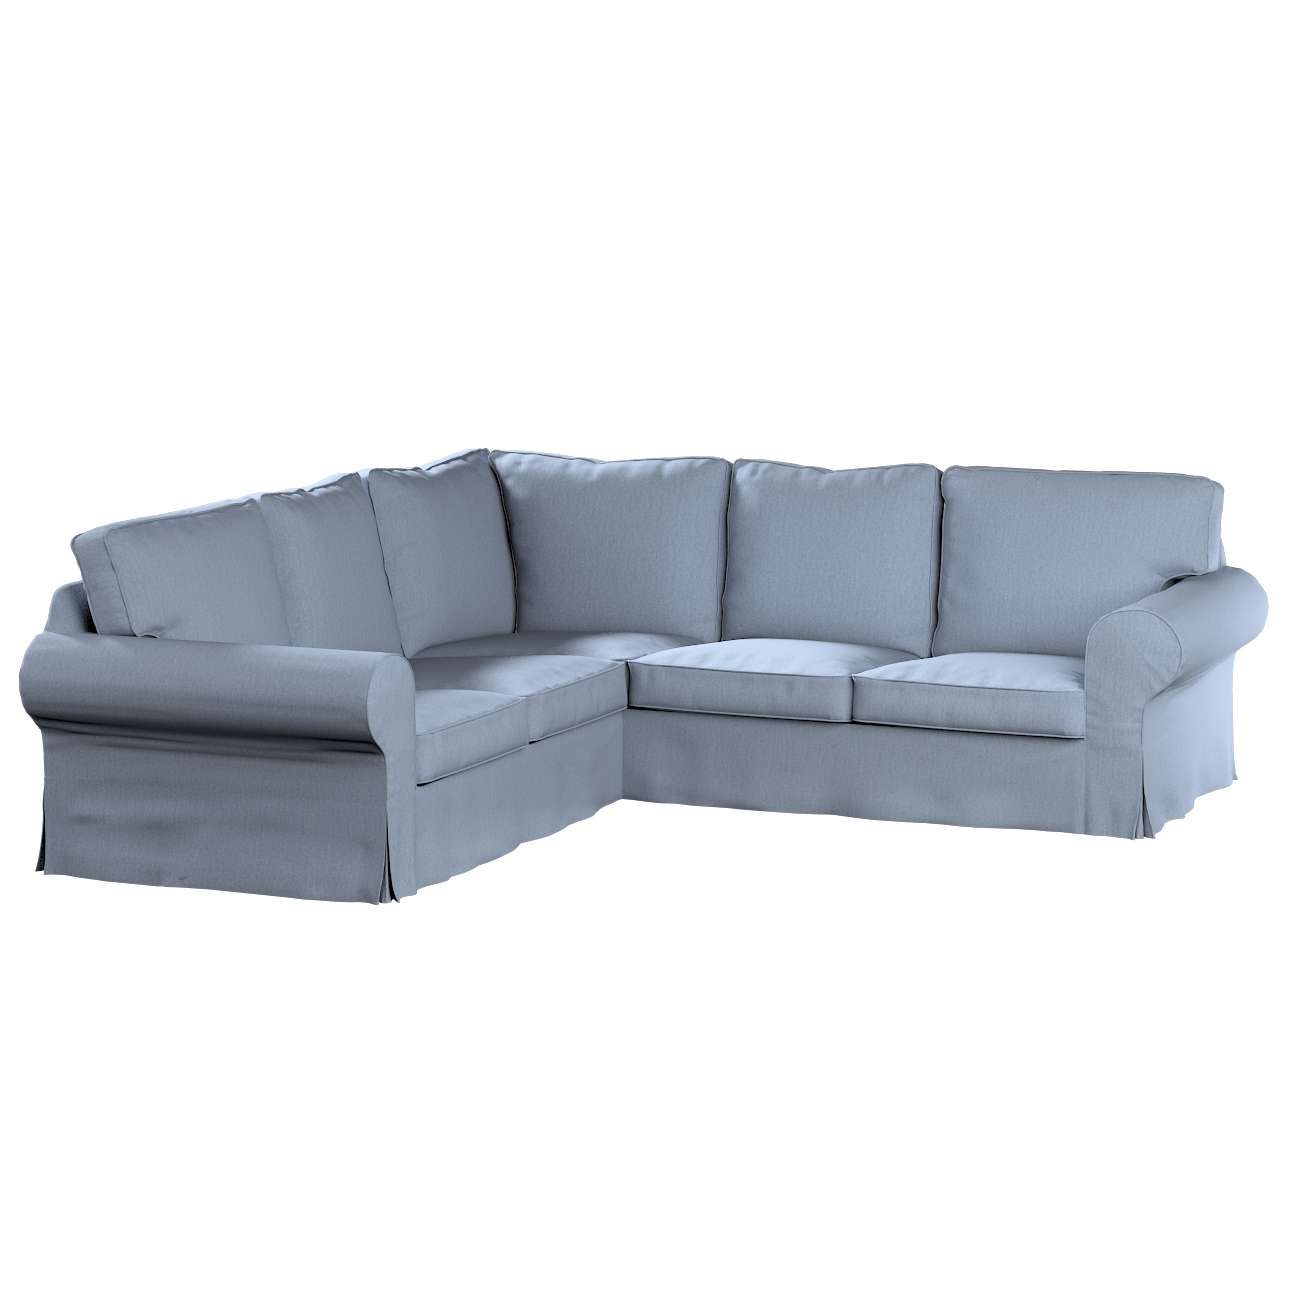 ektorp ecksofabezug silber blau sofahusse ektorp ecksofa chenille mtec metall. Black Bedroom Furniture Sets. Home Design Ideas